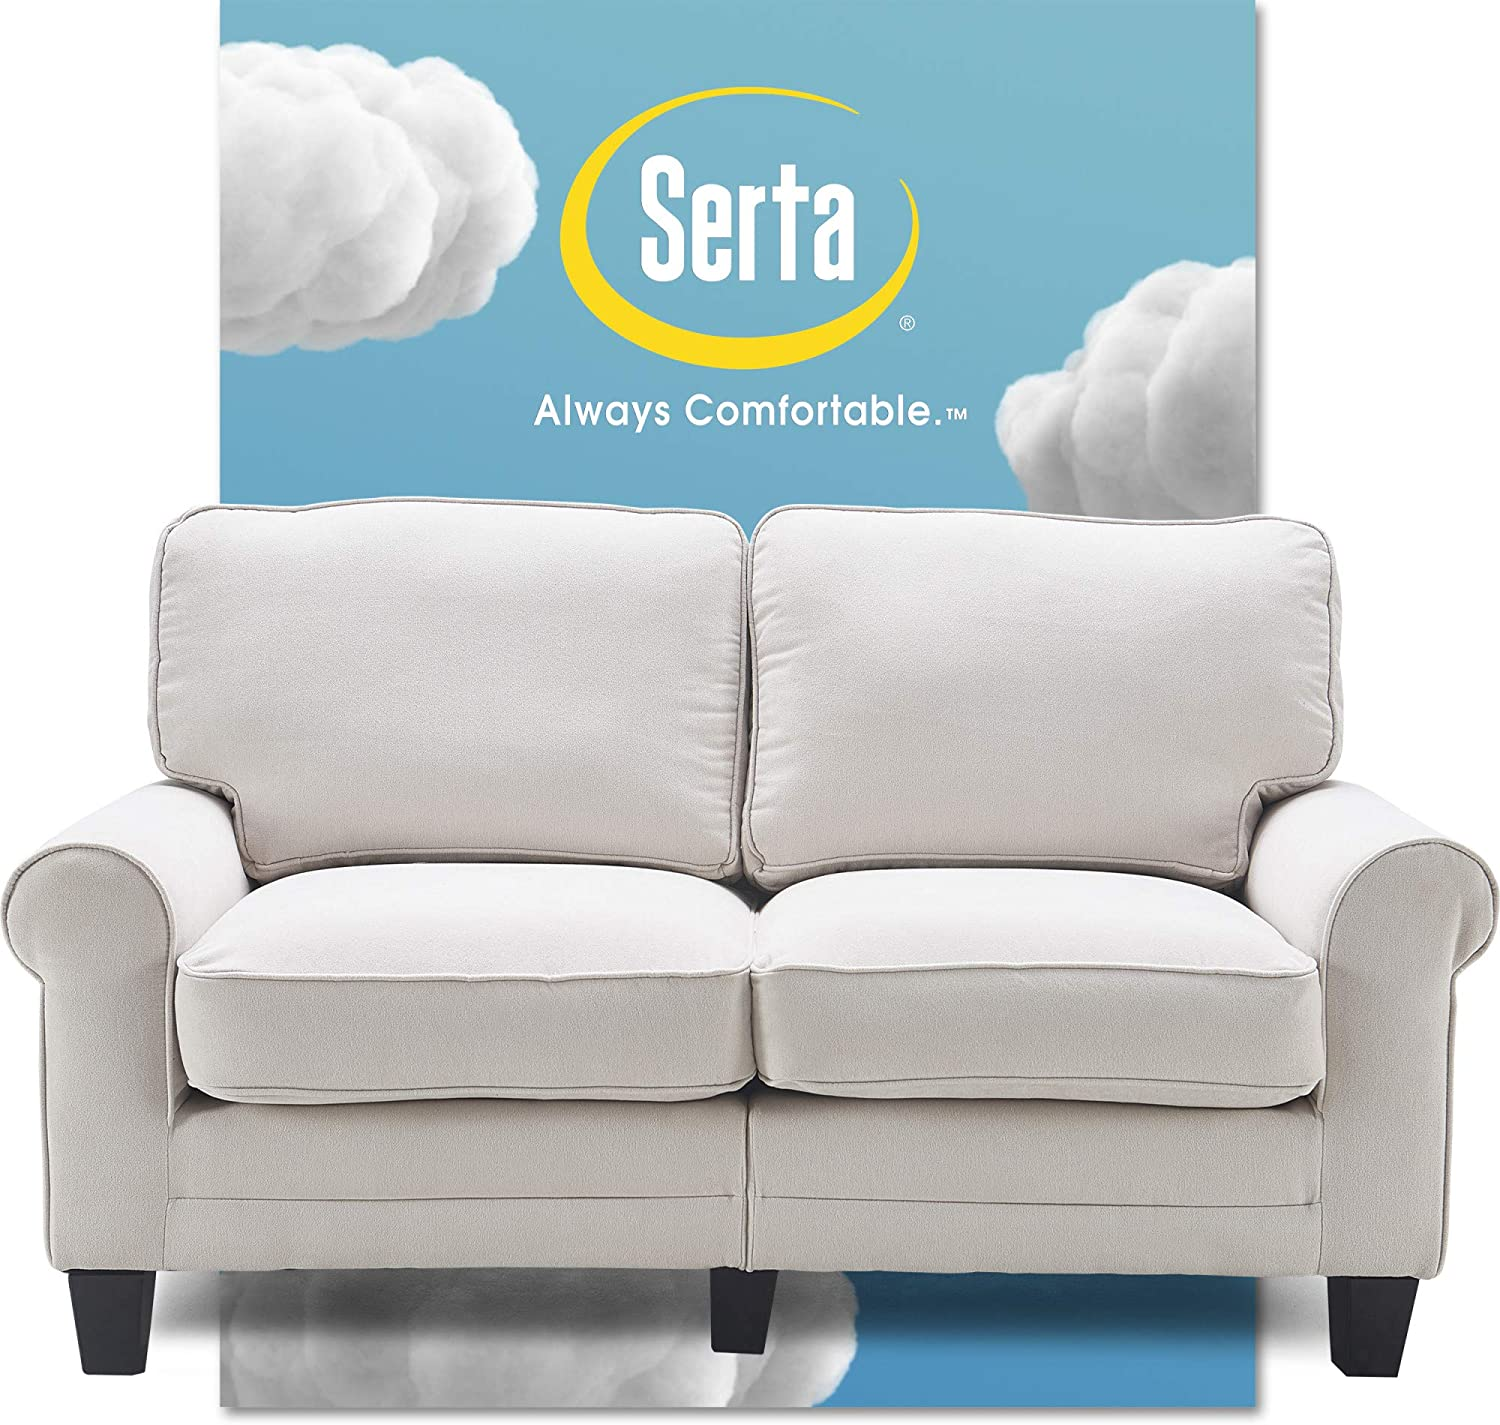 "Serta Copenhagen Sofa Couch for Two People, Pillowed Back Cushions and Rounded Arms, Durable Modern Upholstered Fabric, 61"" Loveseat, Cream"